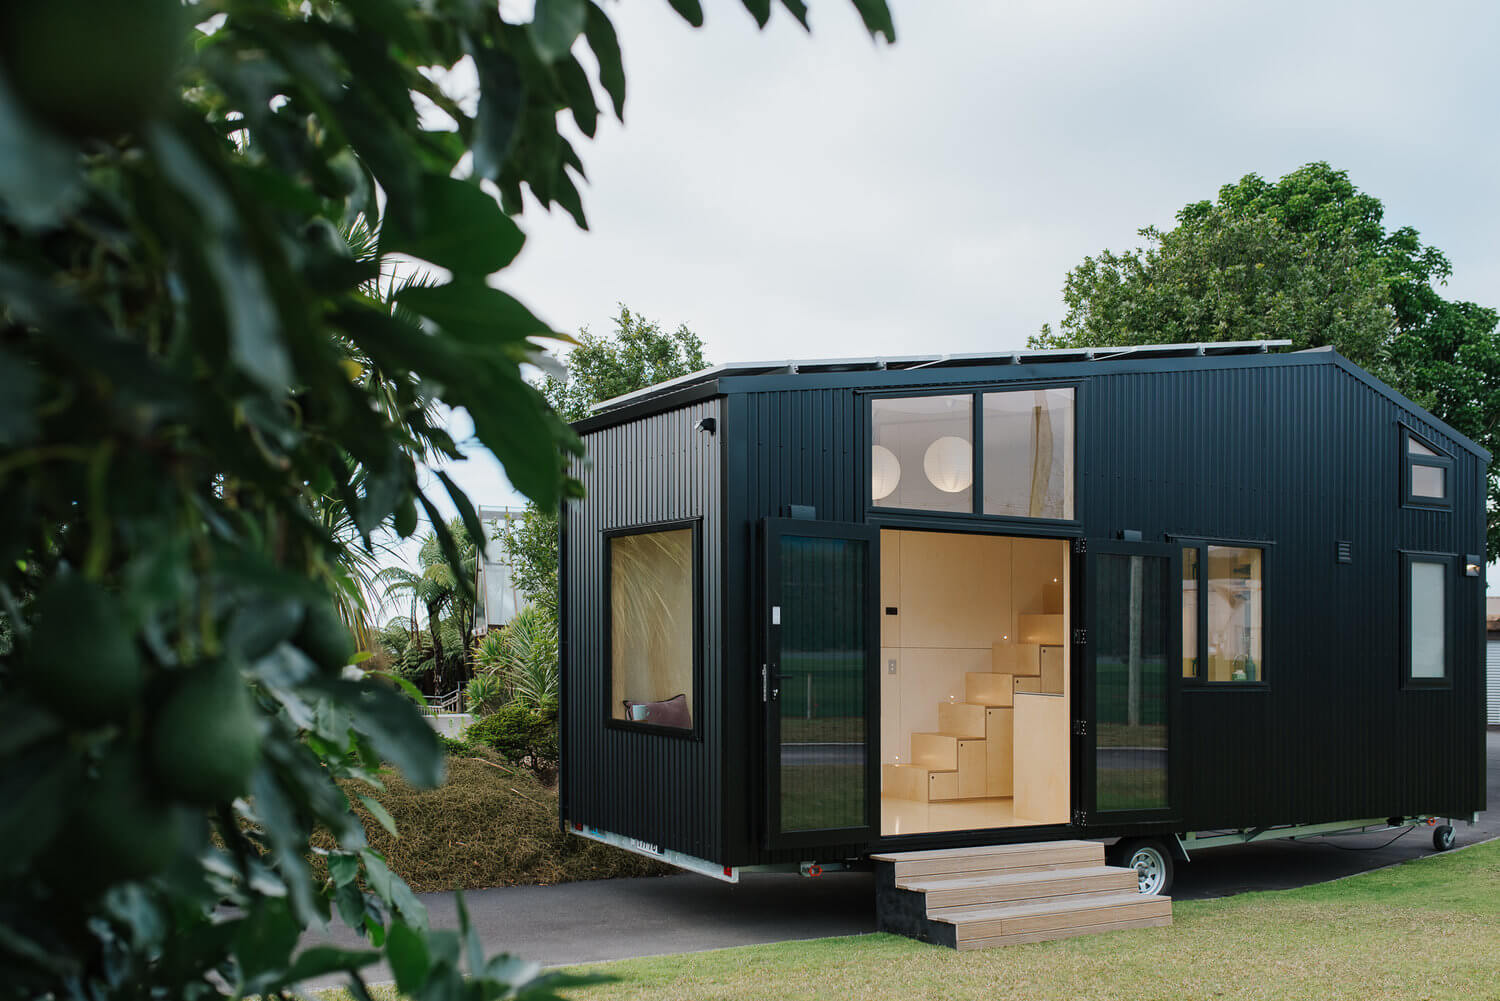 Front view of First Light Tiny House. Black tiny house on wheels. Greenery.